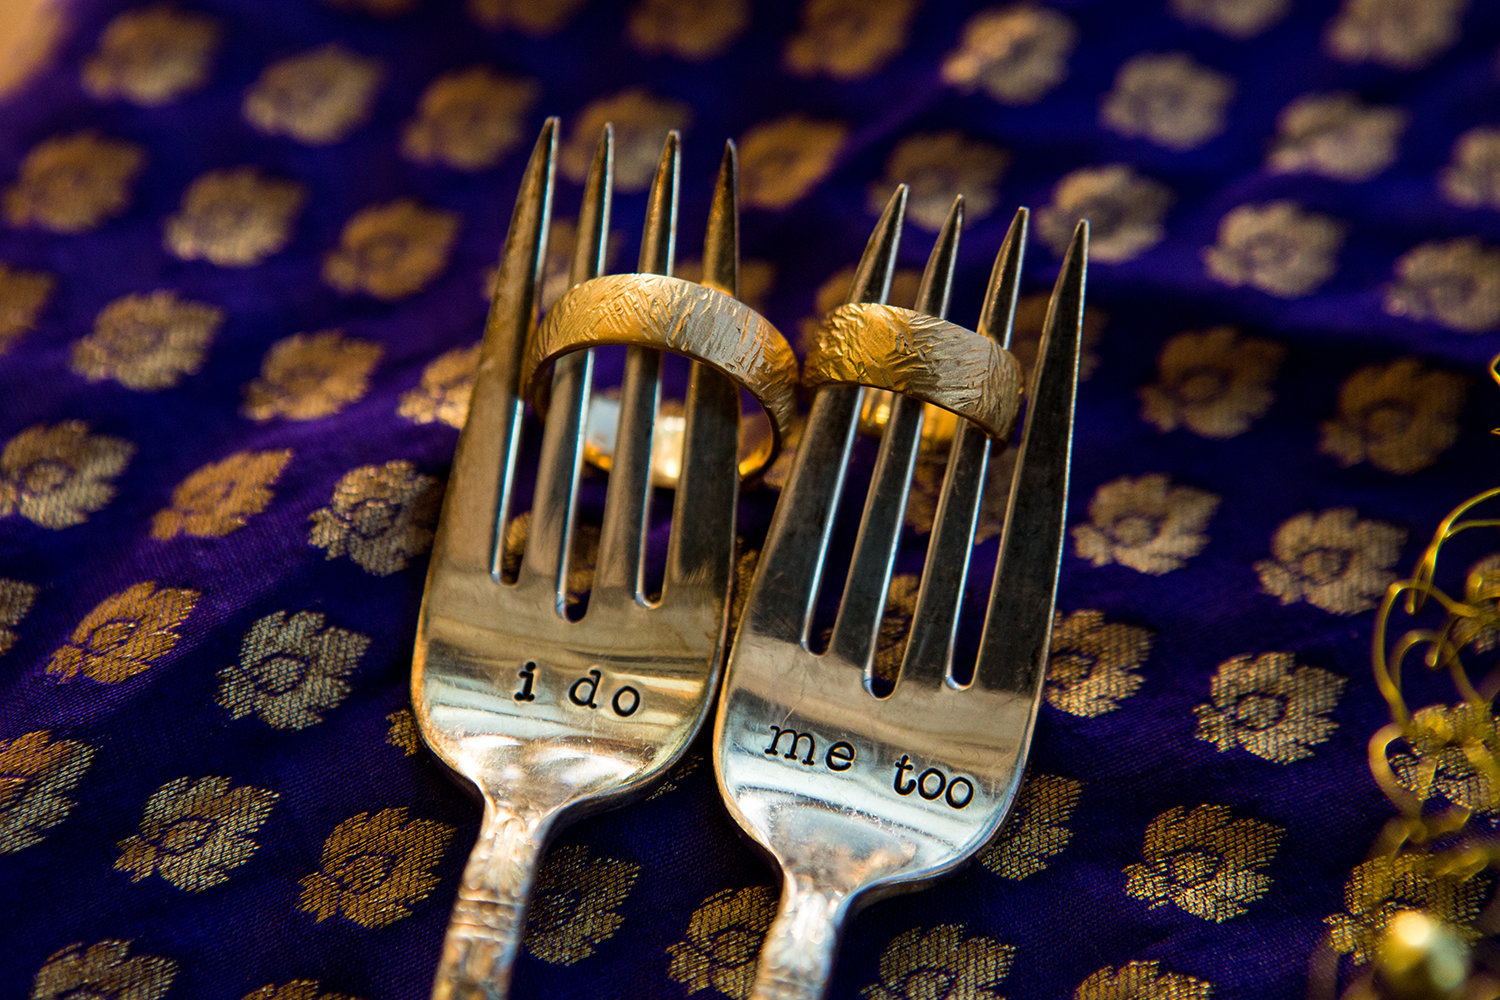 Creative ring detail photo using forks at an Indian wedding